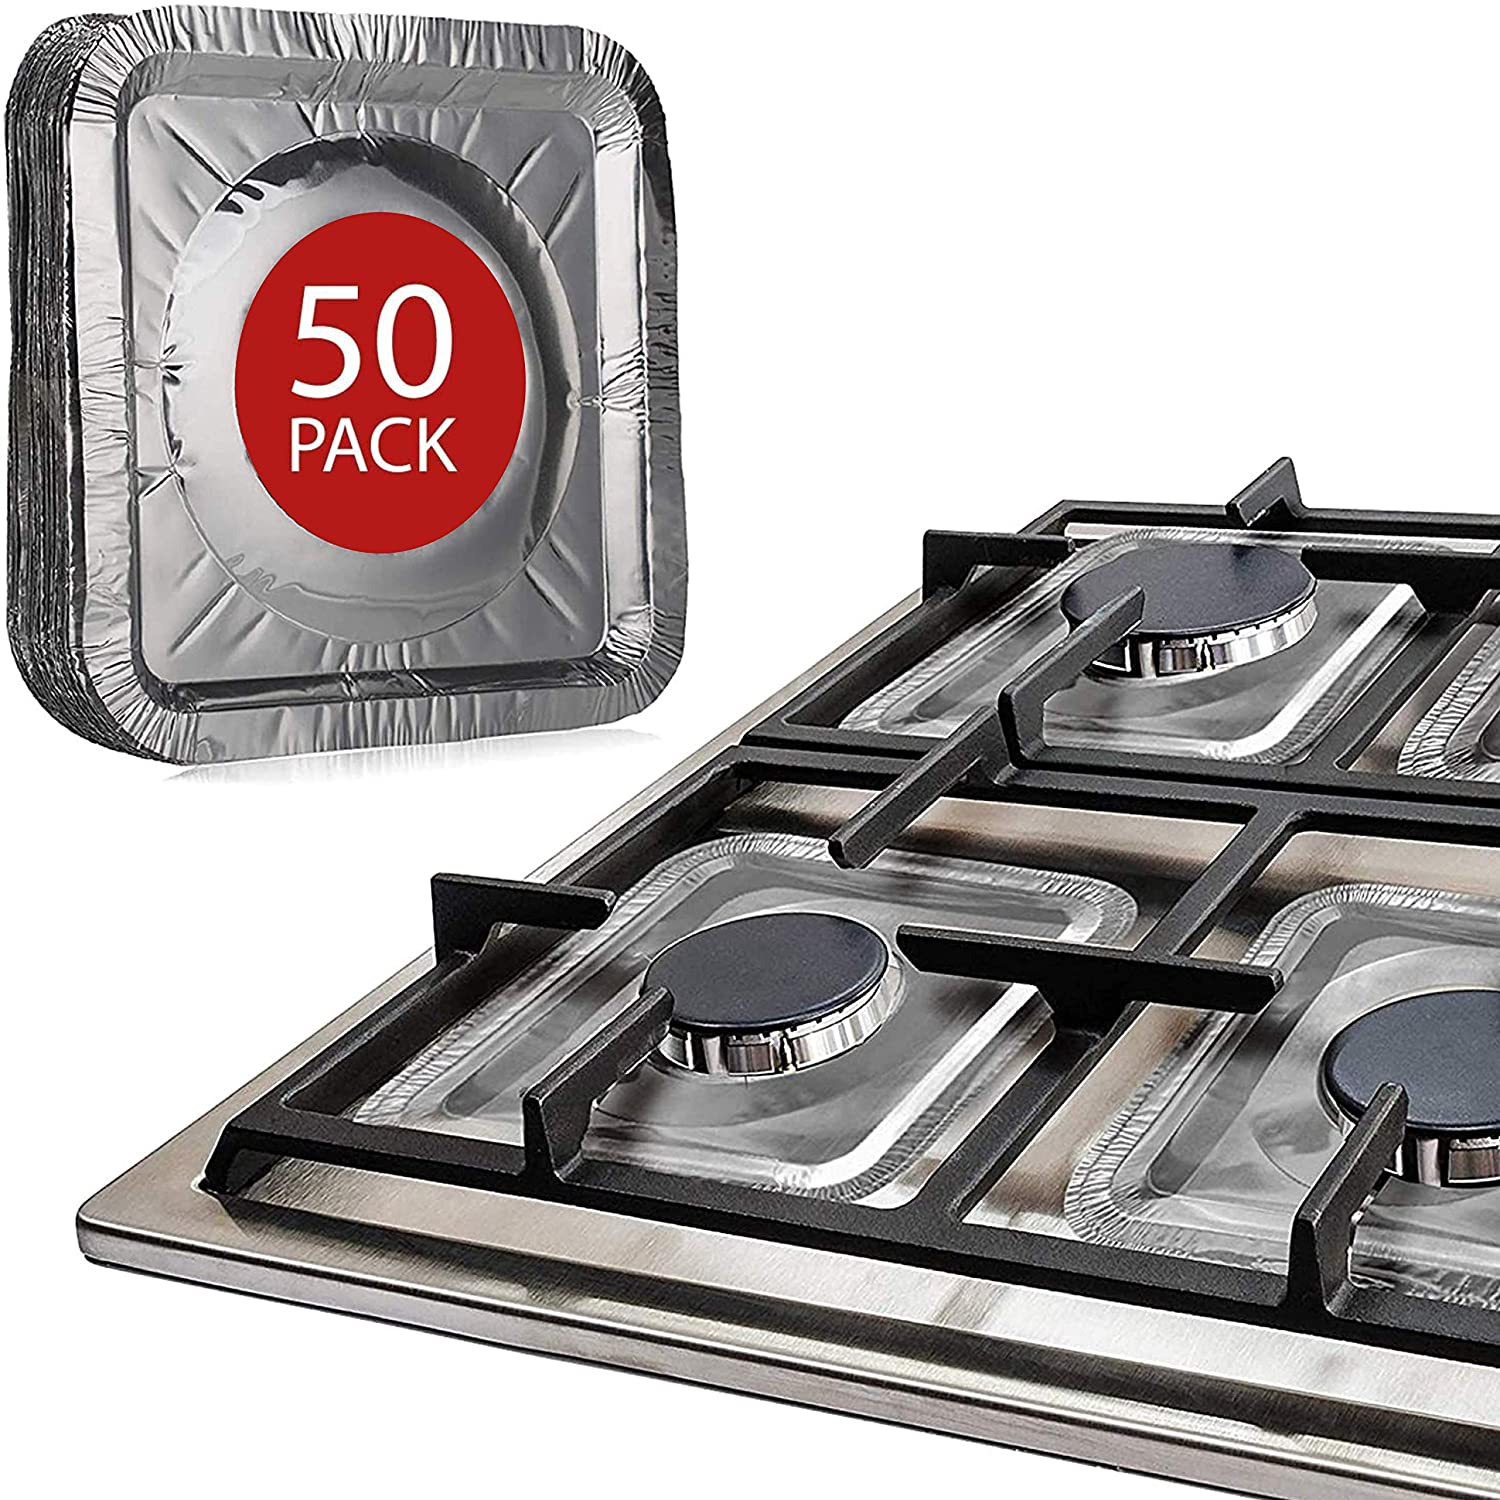 Gas Stove Burner Covers by Linda's Kansas City Mall D Industry No. 1 50 Essentials Pack